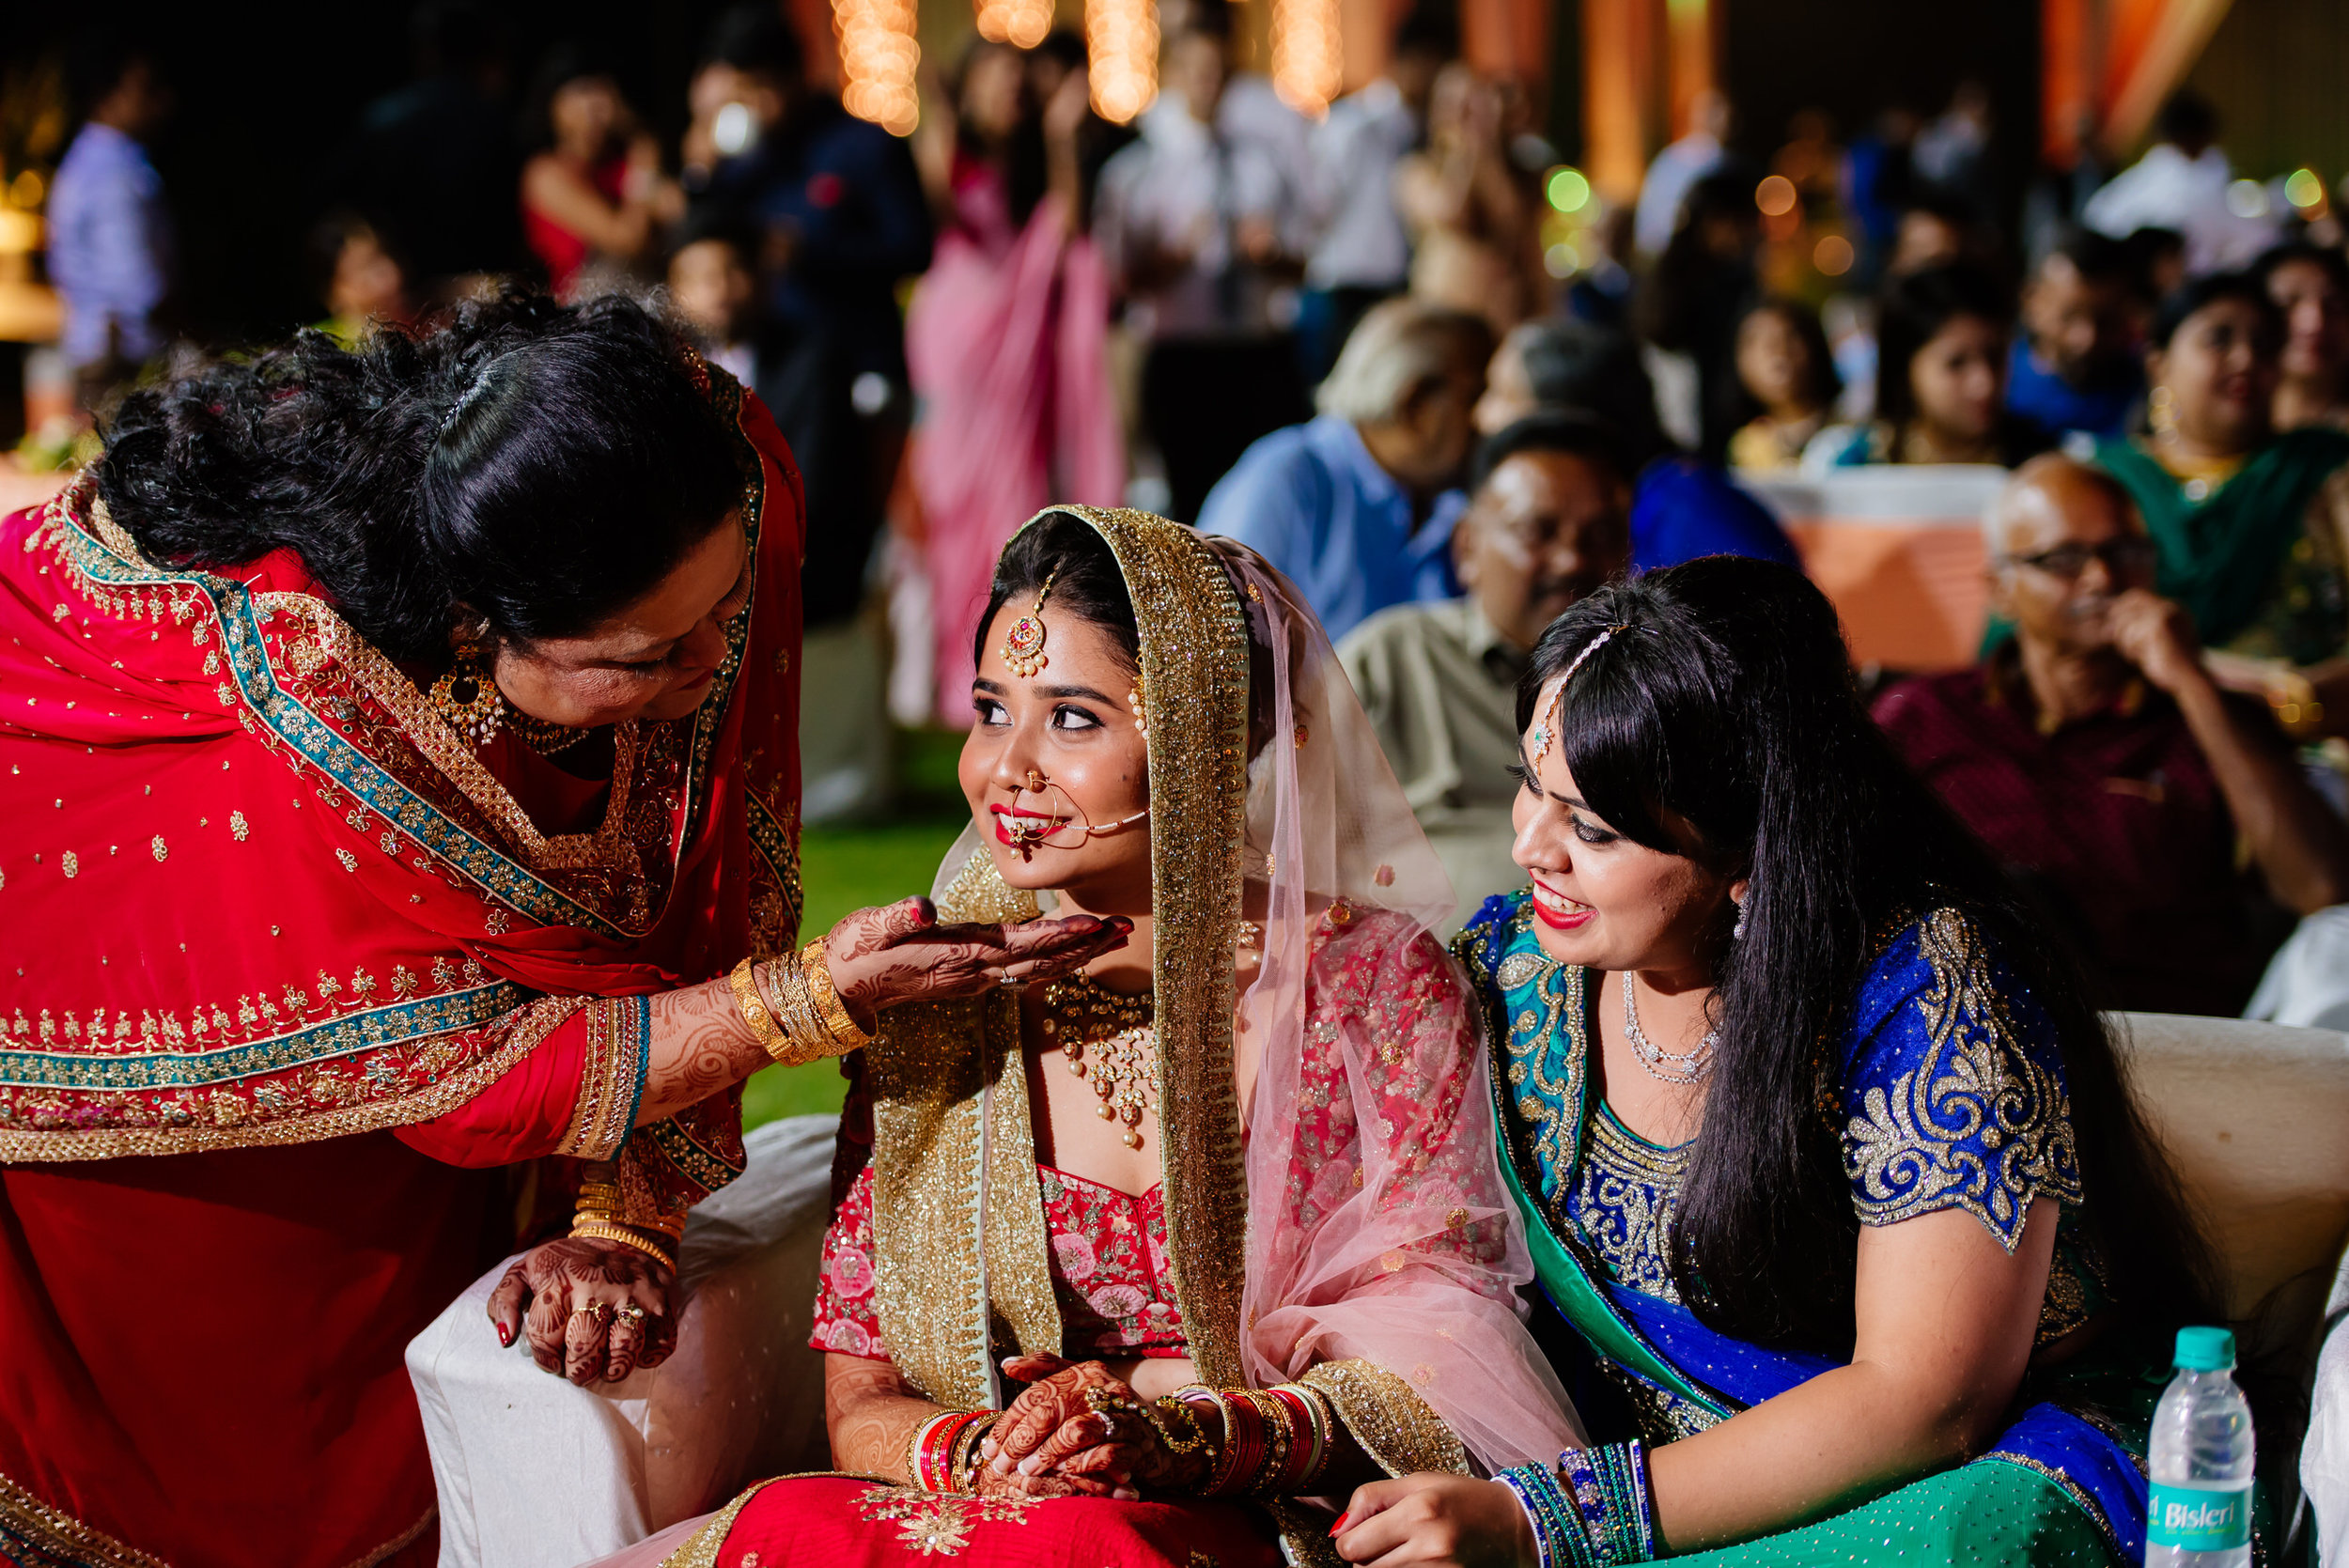 Parvez Nikah - Night-2425.jpg